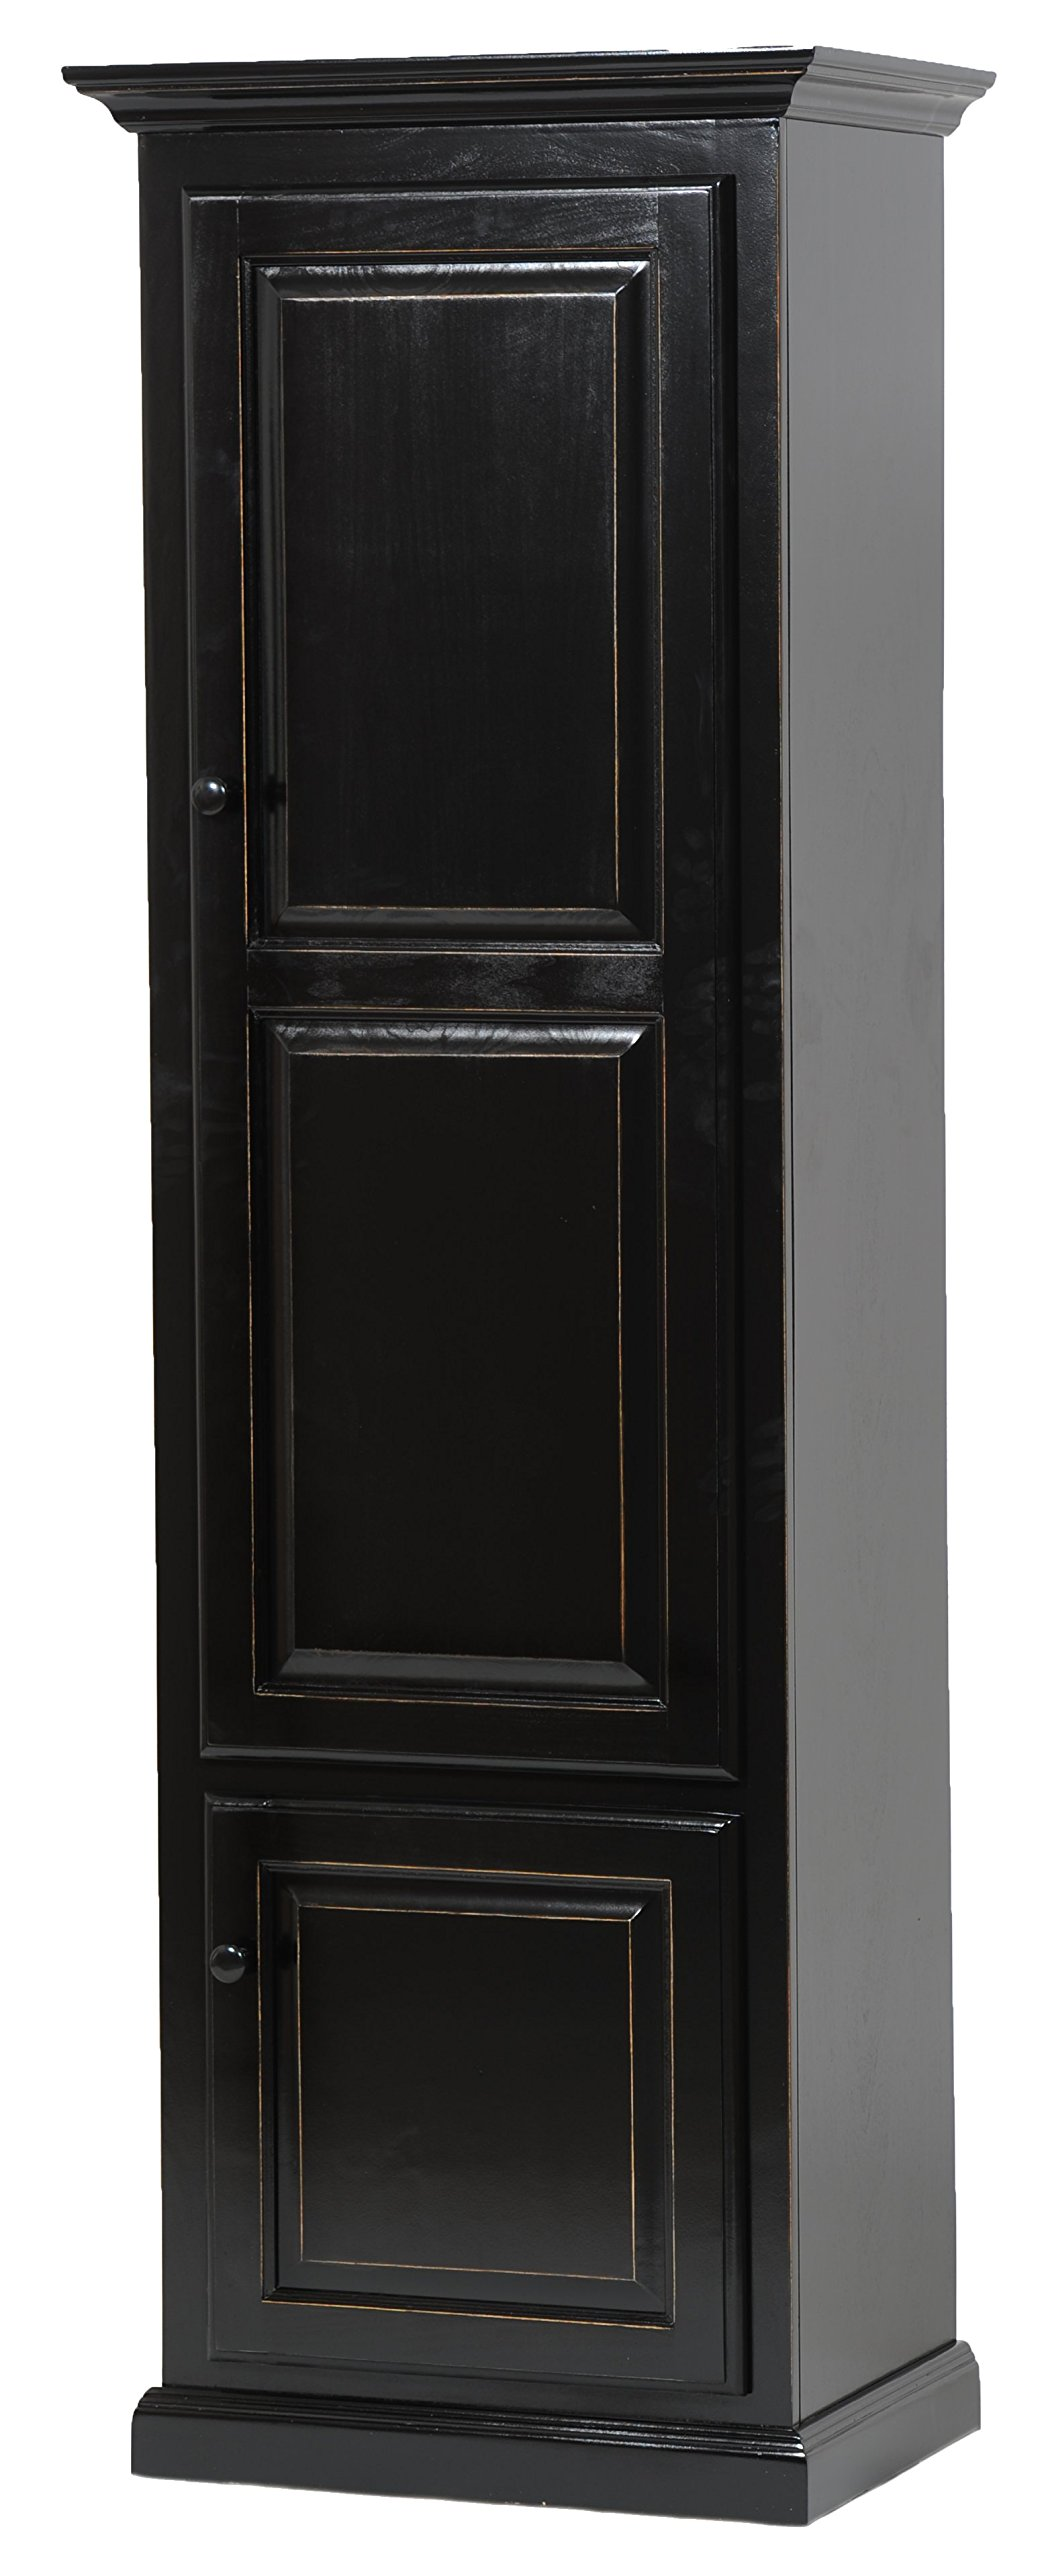 American Heartland #95789GY Poplar Single Door Pantry, Grey